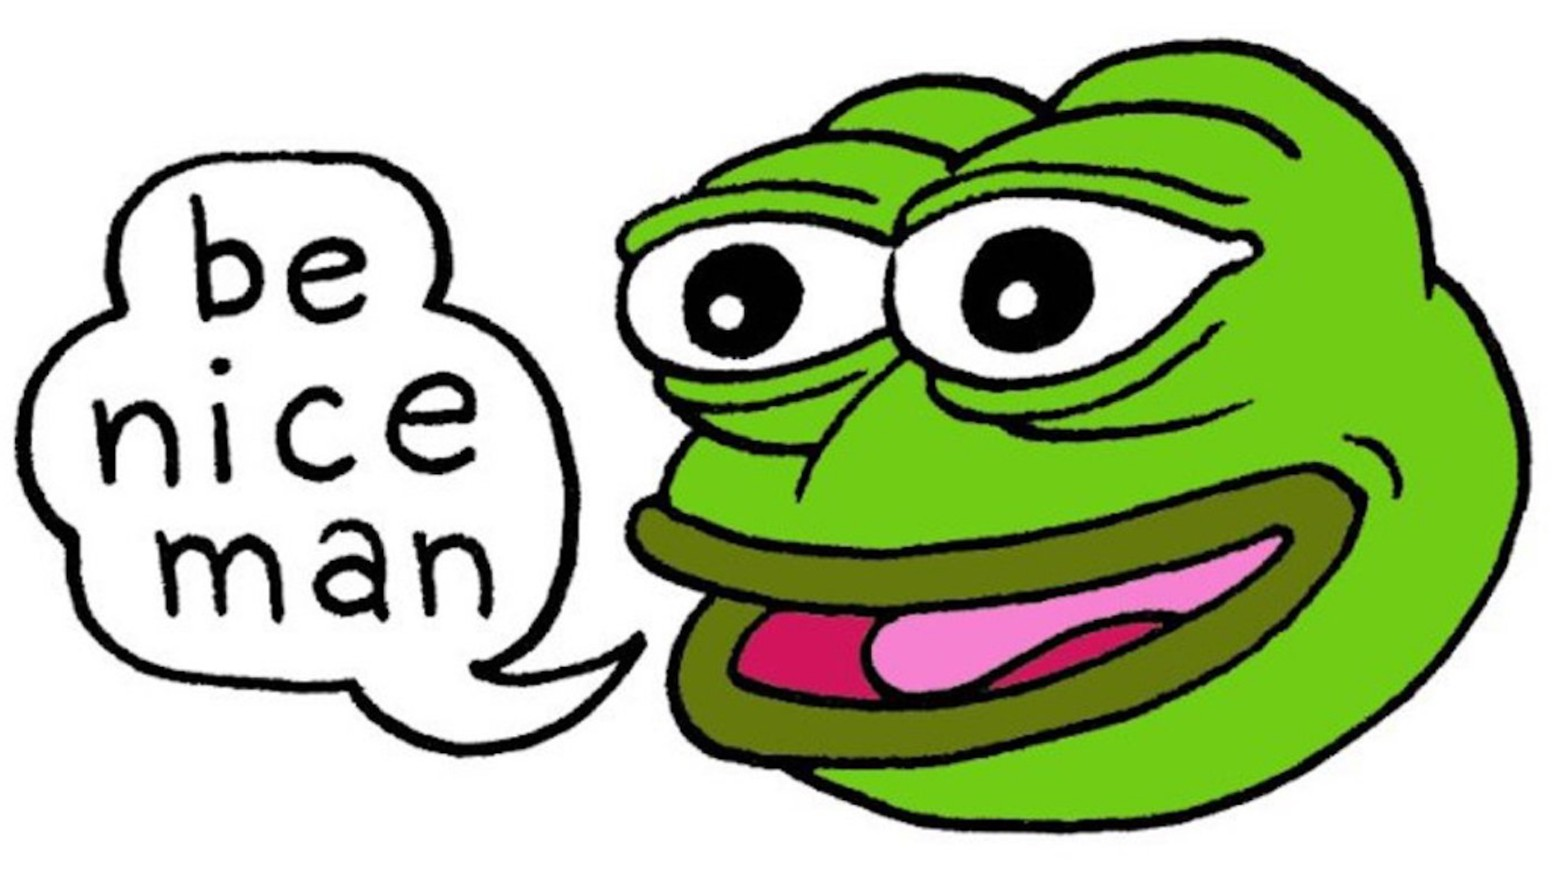 pepe the frog u0027s creator goes legally nuclear against the alt right